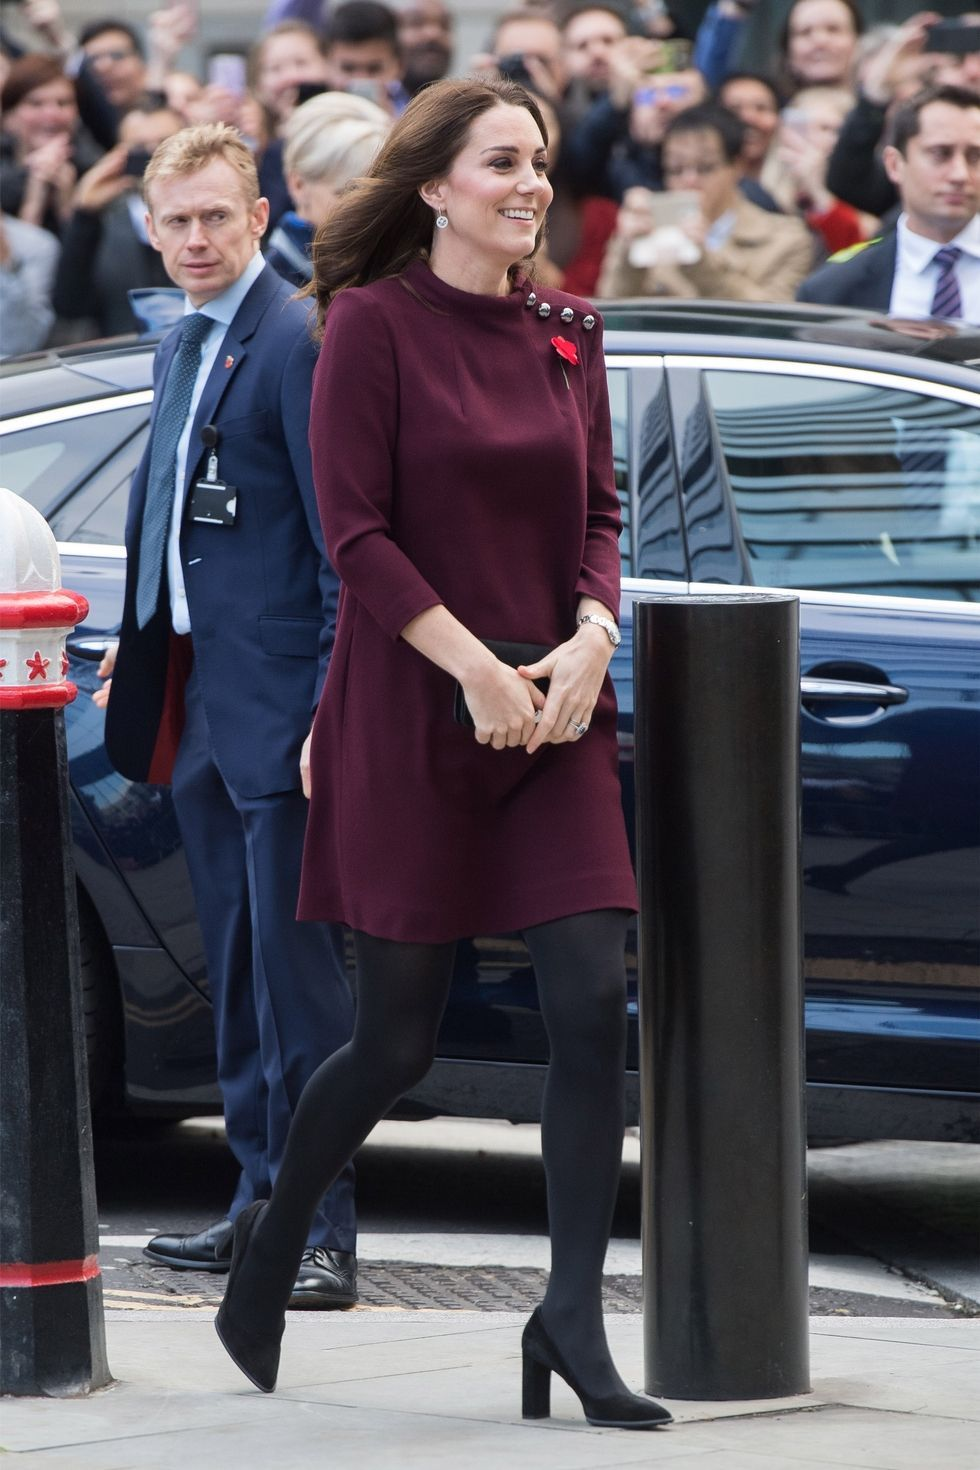 a57c1b5894 Kate Middleton's Best Style Moments - The Duchess of Cambridge's Most  Fashionable Outfits